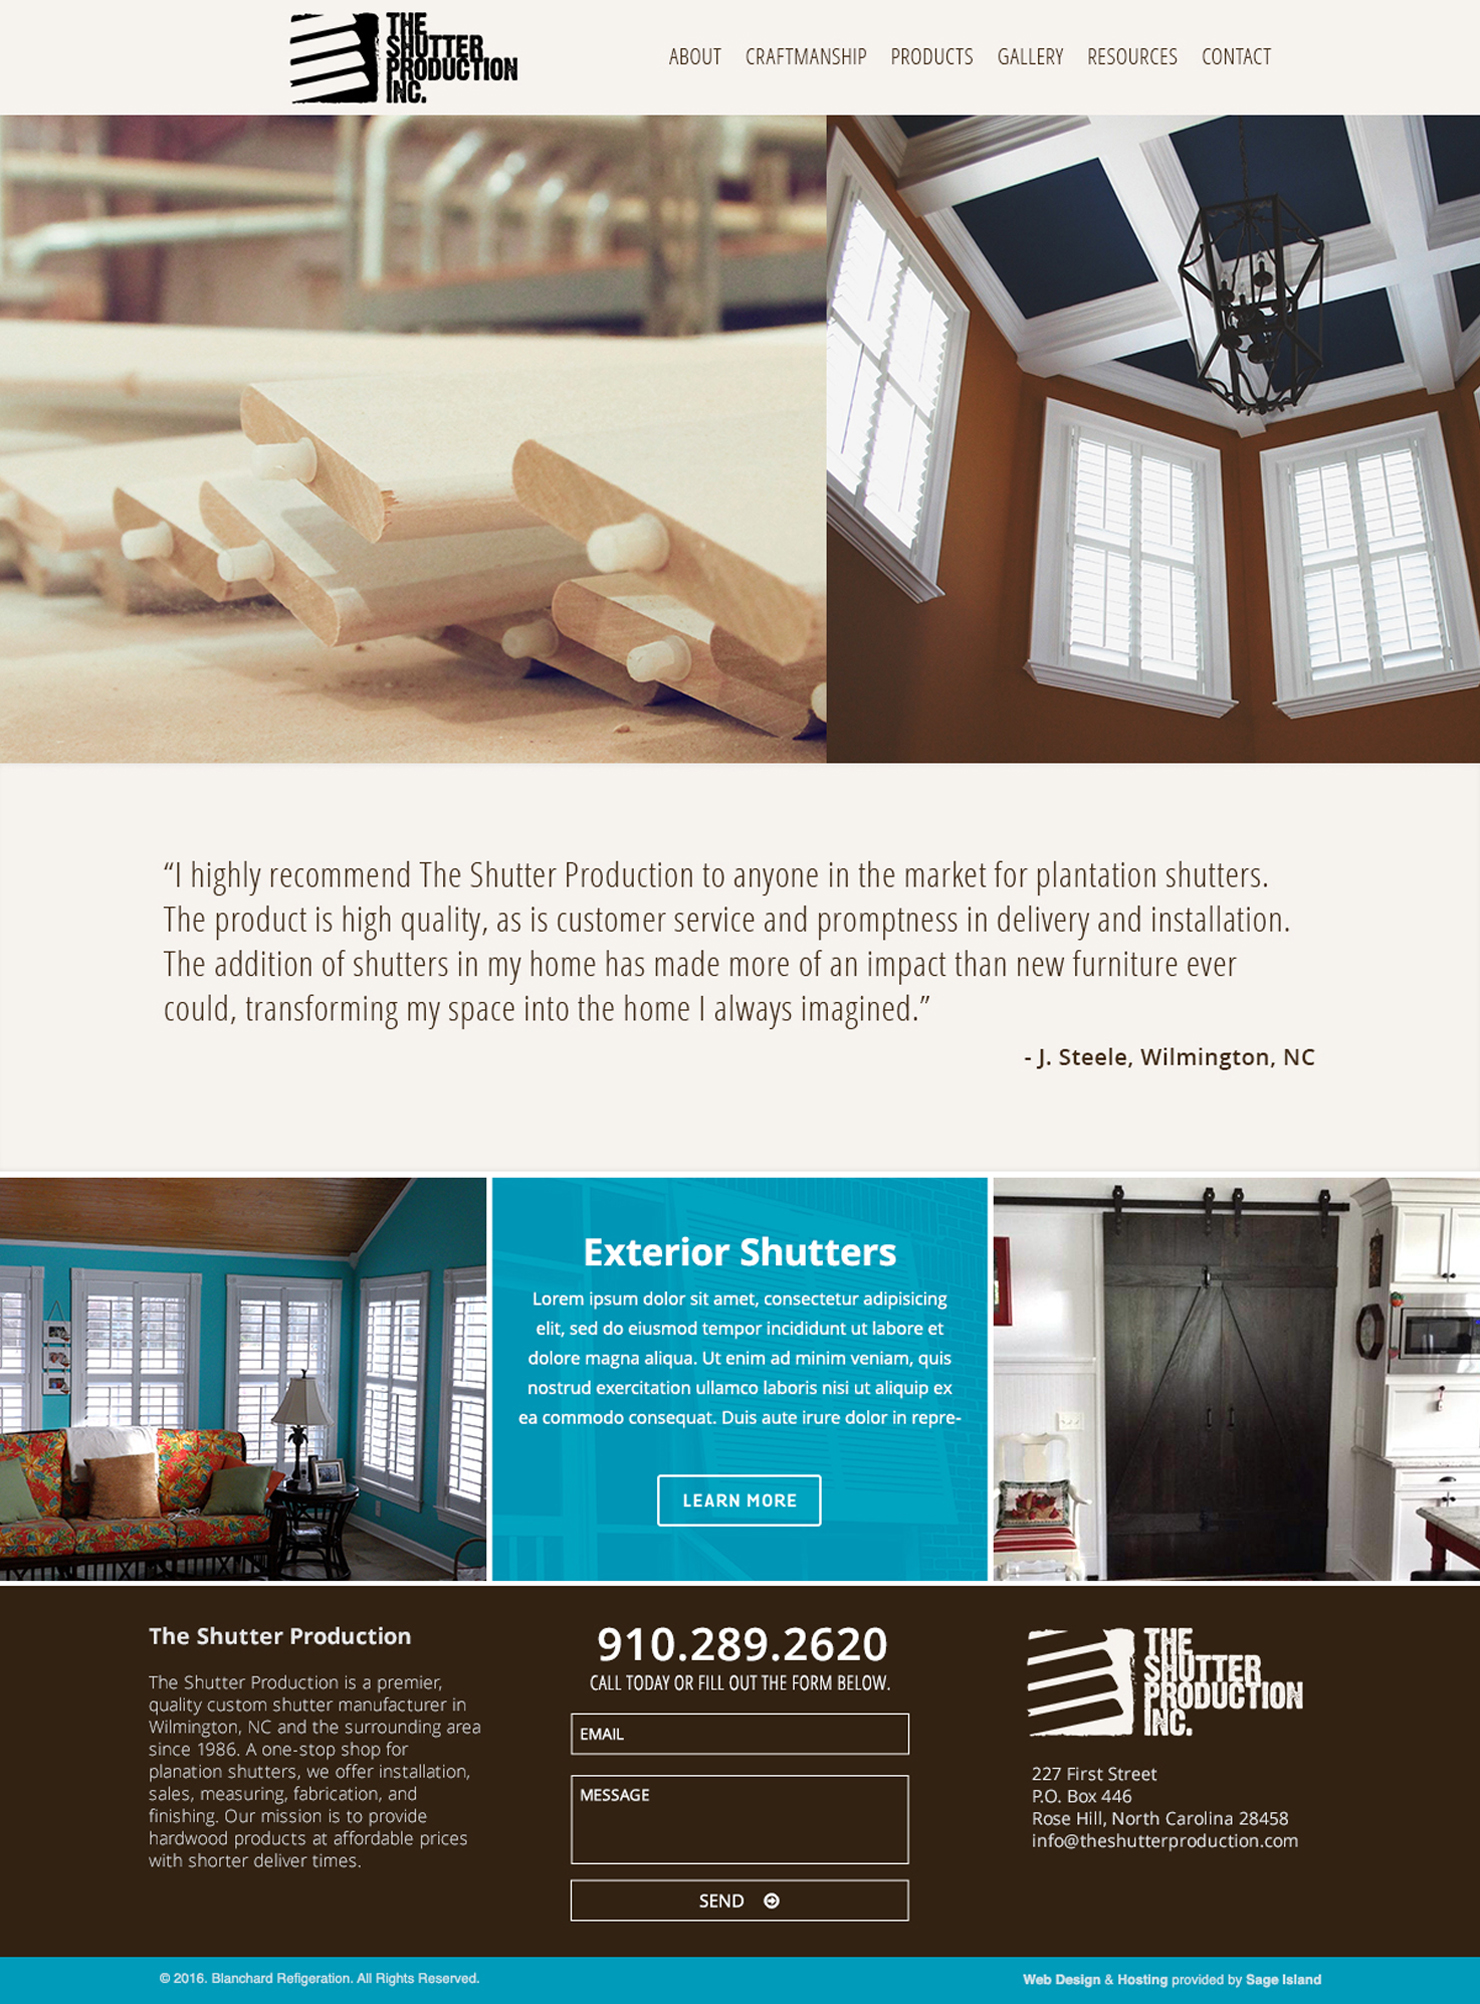 the-shutter-production-handcrafted-custom-shutters-website-design